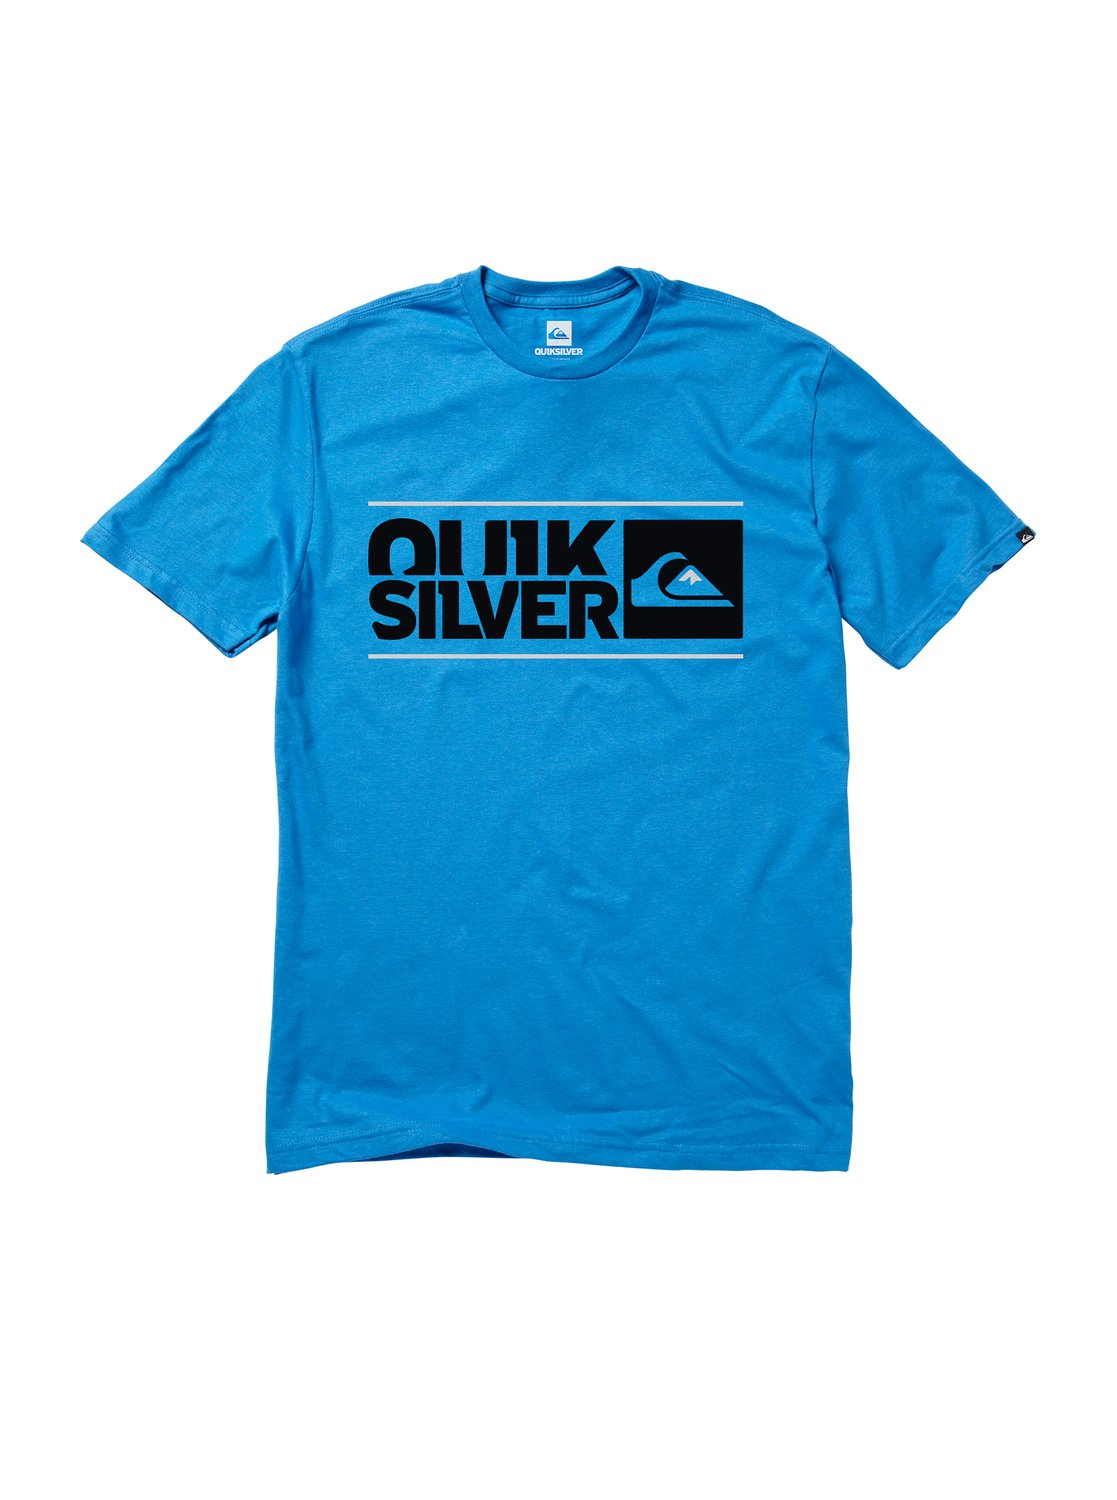 Quiksilver plain black t shirt - 0 Ill Faded T Shirt Aqyzt01084 Quiksilver